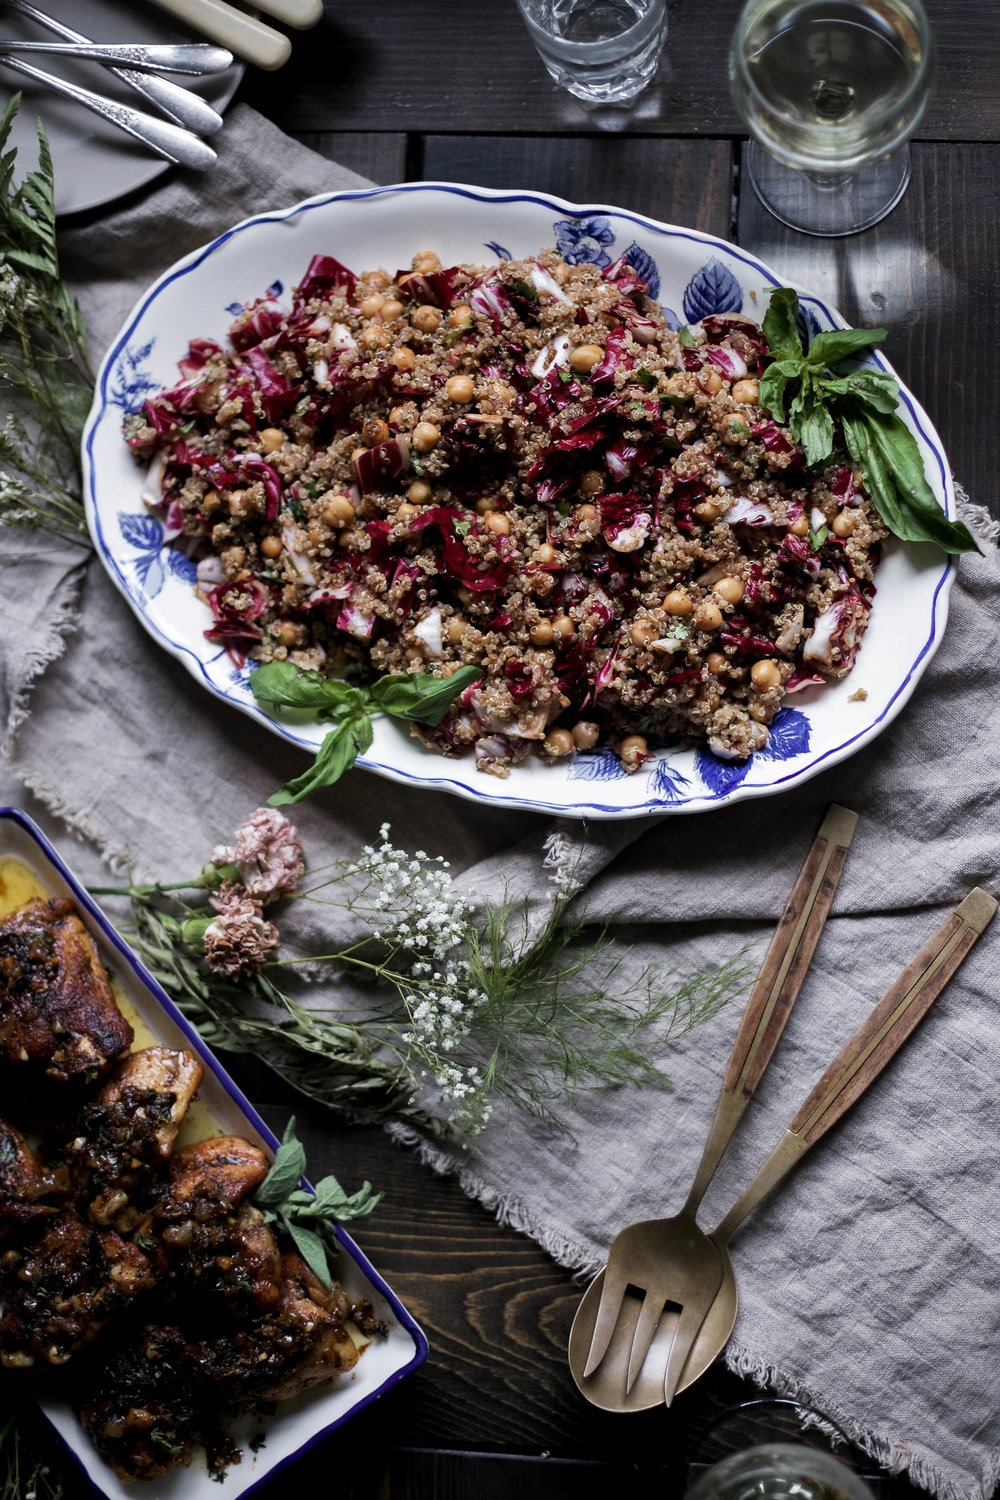 balsamic chickpea and radicchio quinoa salad, herbed white wine chicken, roasted vegetables with shallot and tarragon dressing -66.jpg